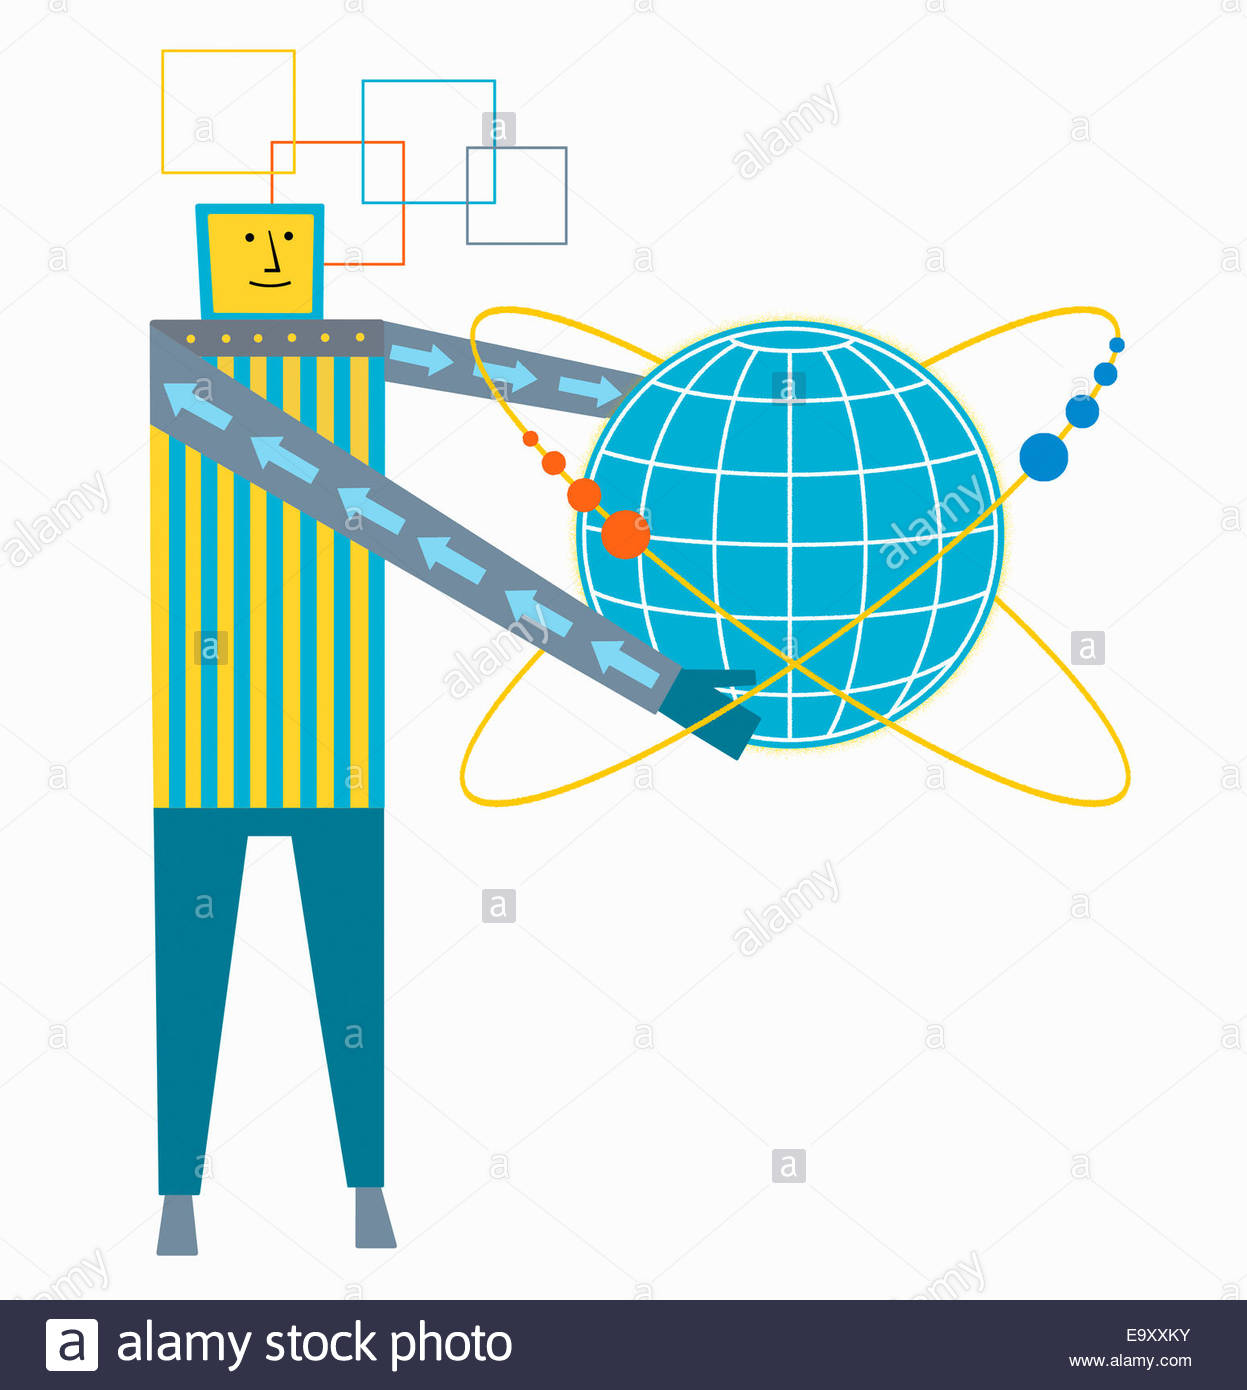 Man connected to globe with orbiting spheres - Stock Image